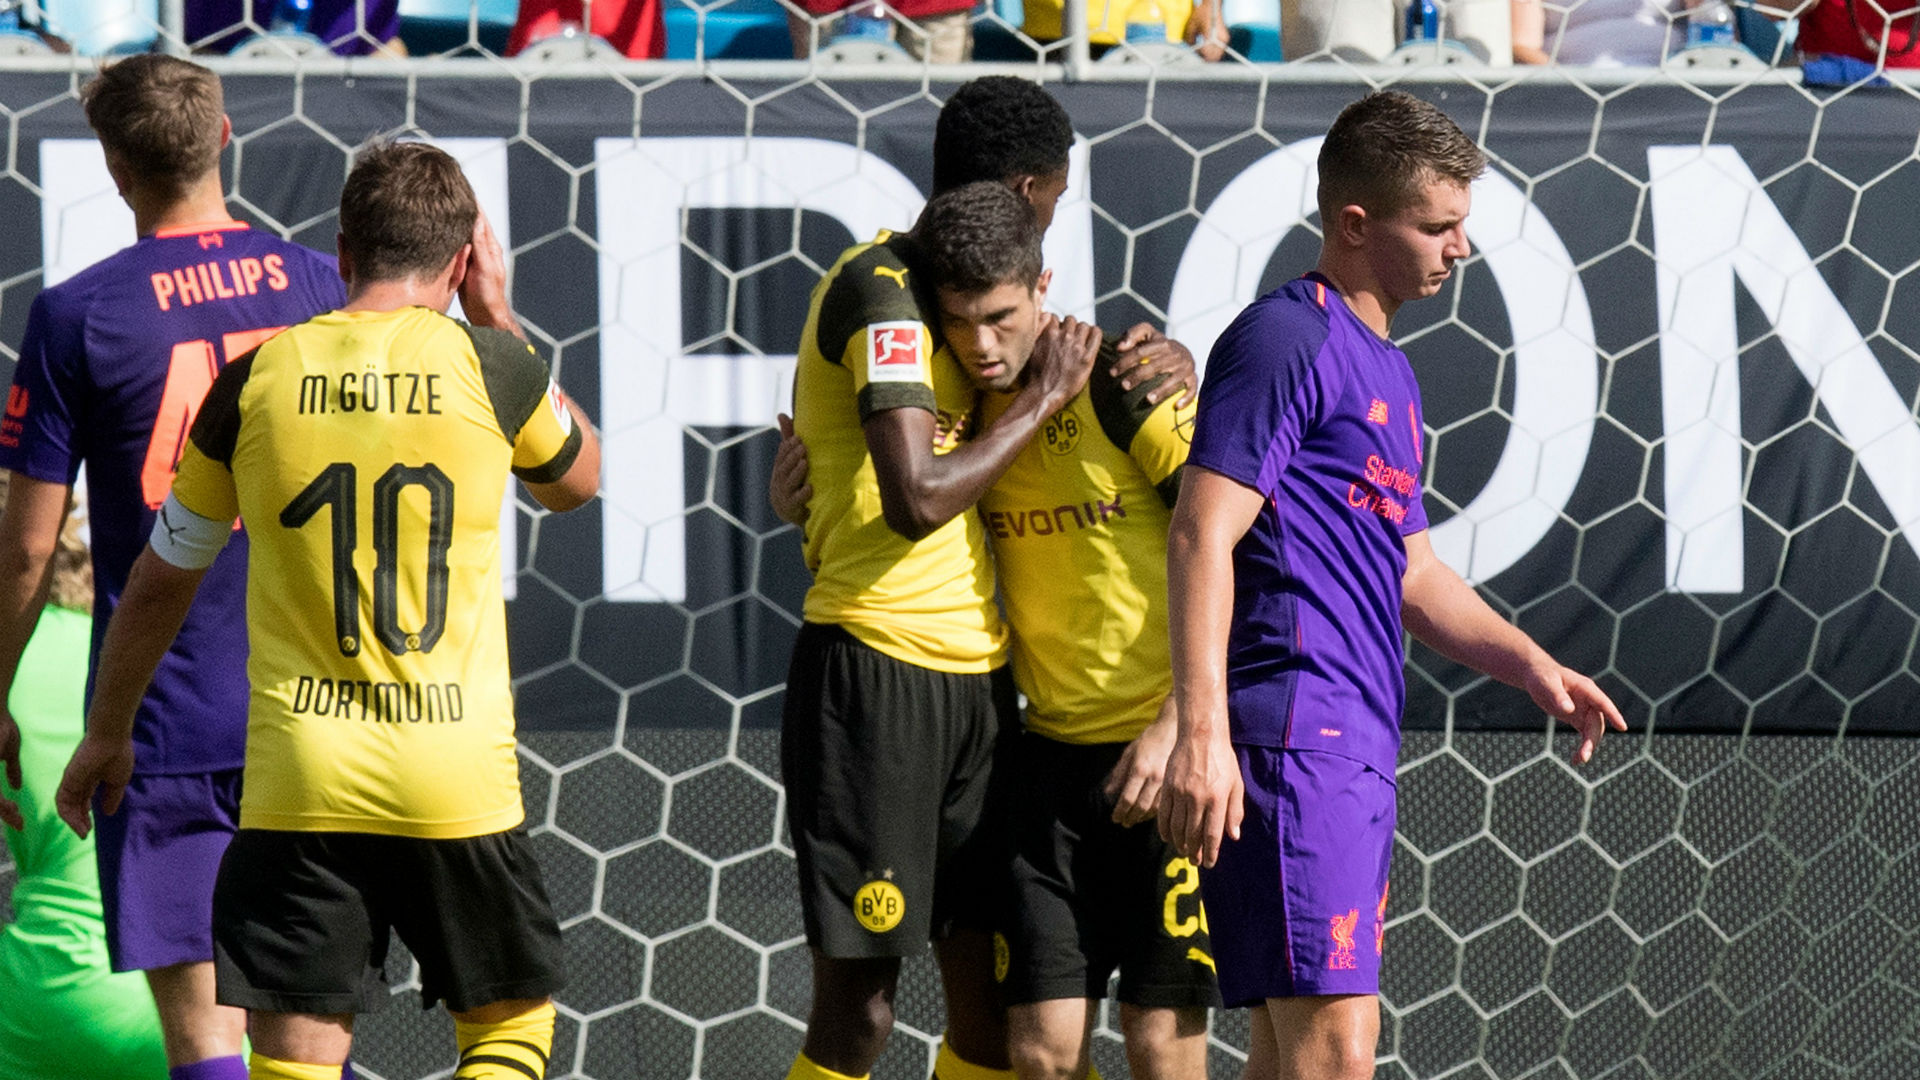 Joel Matip limps off in Liverpool's friendly with Borussia Dortmund